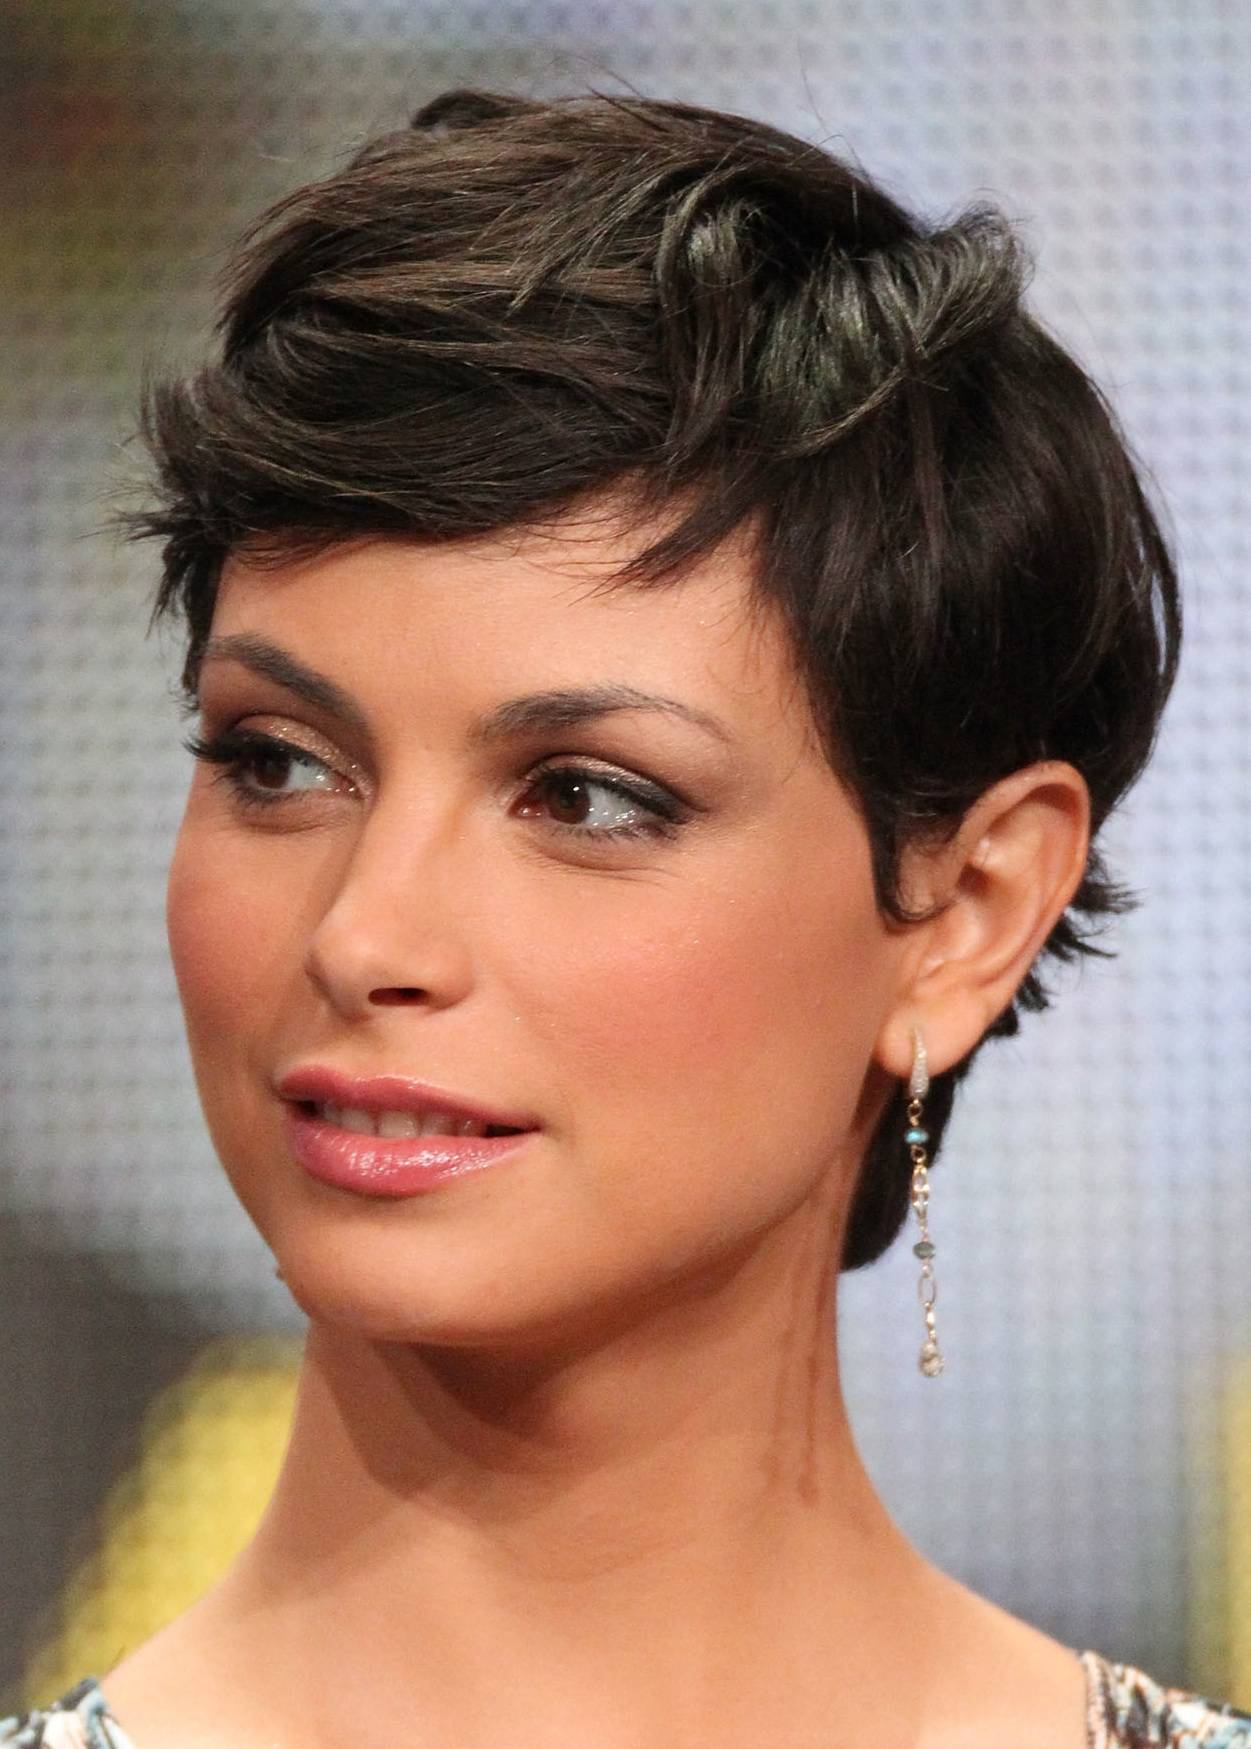 35 Facts To Know Before Doing Pixie Cut For Women Hairstyles For Women